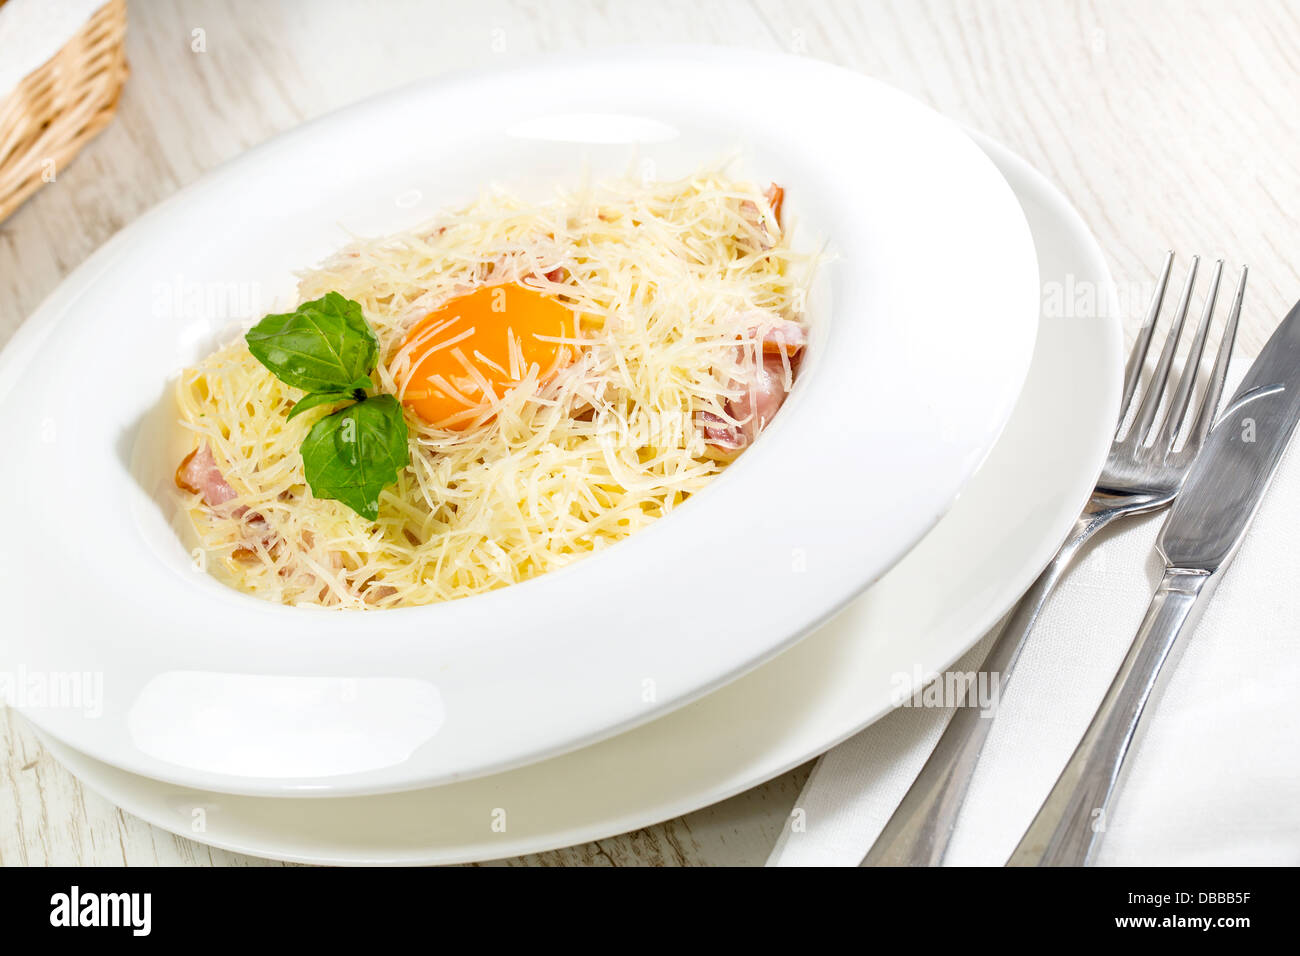 spaghetti with egg on a table in a restaurant Stock Photo